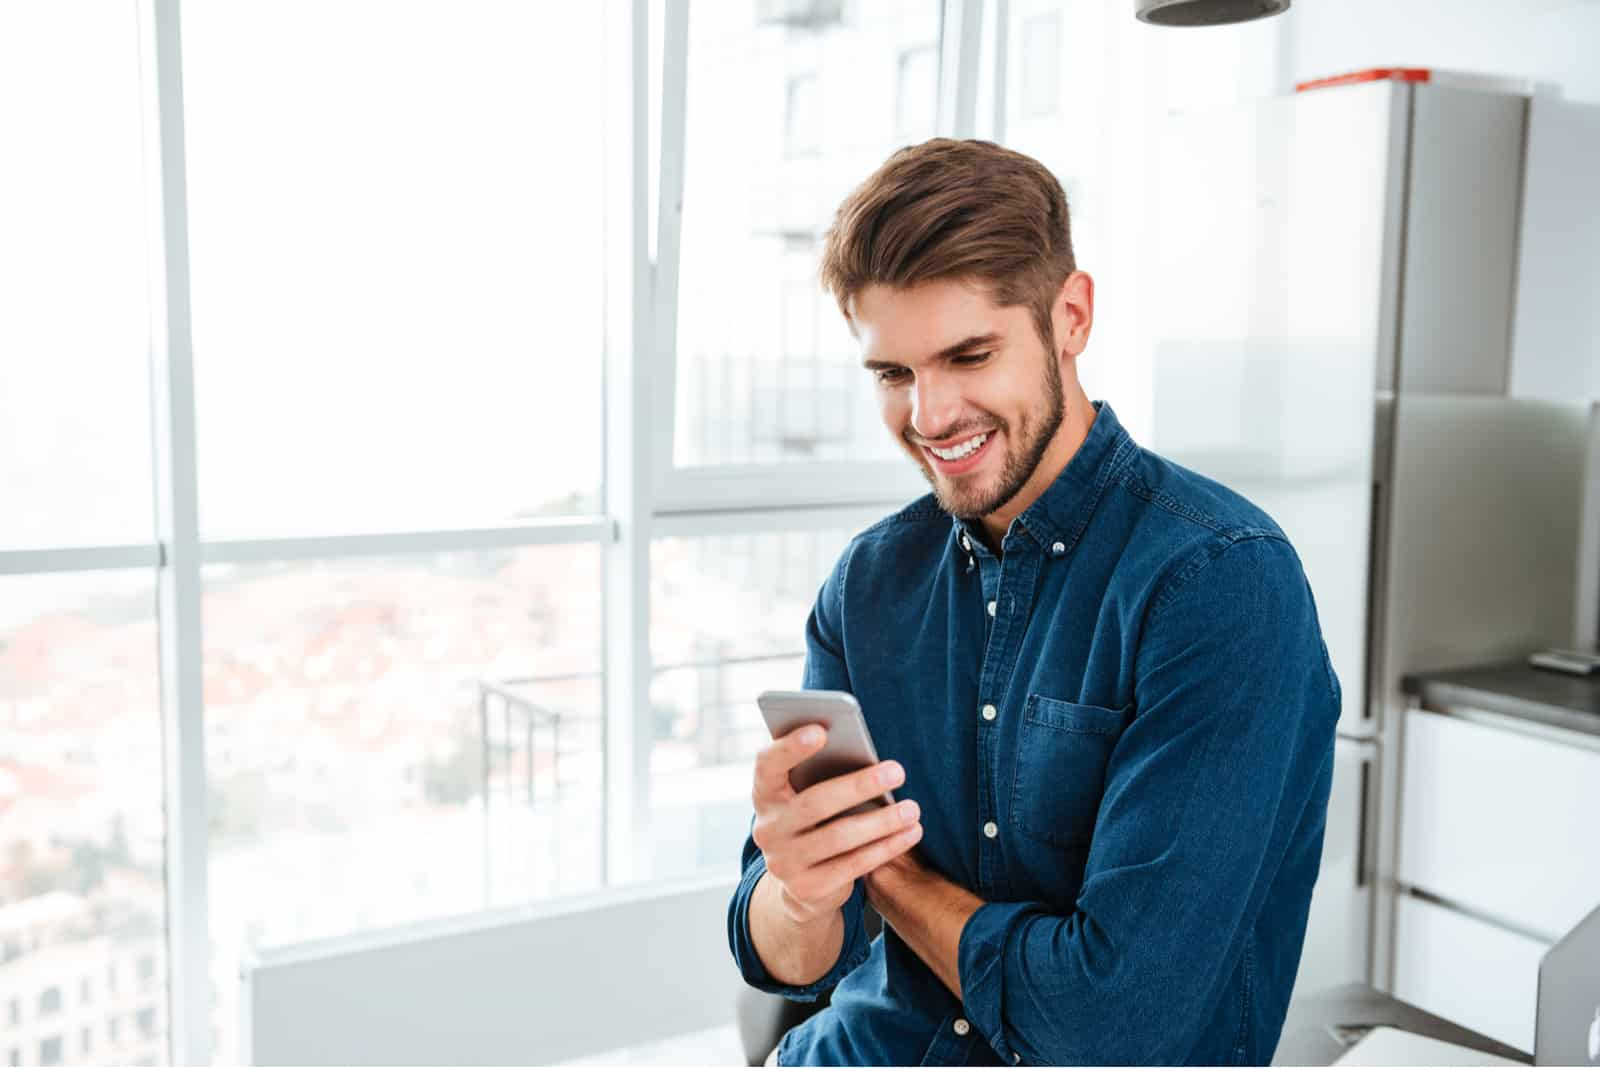 a smiling man stands in the office and keys on the phone